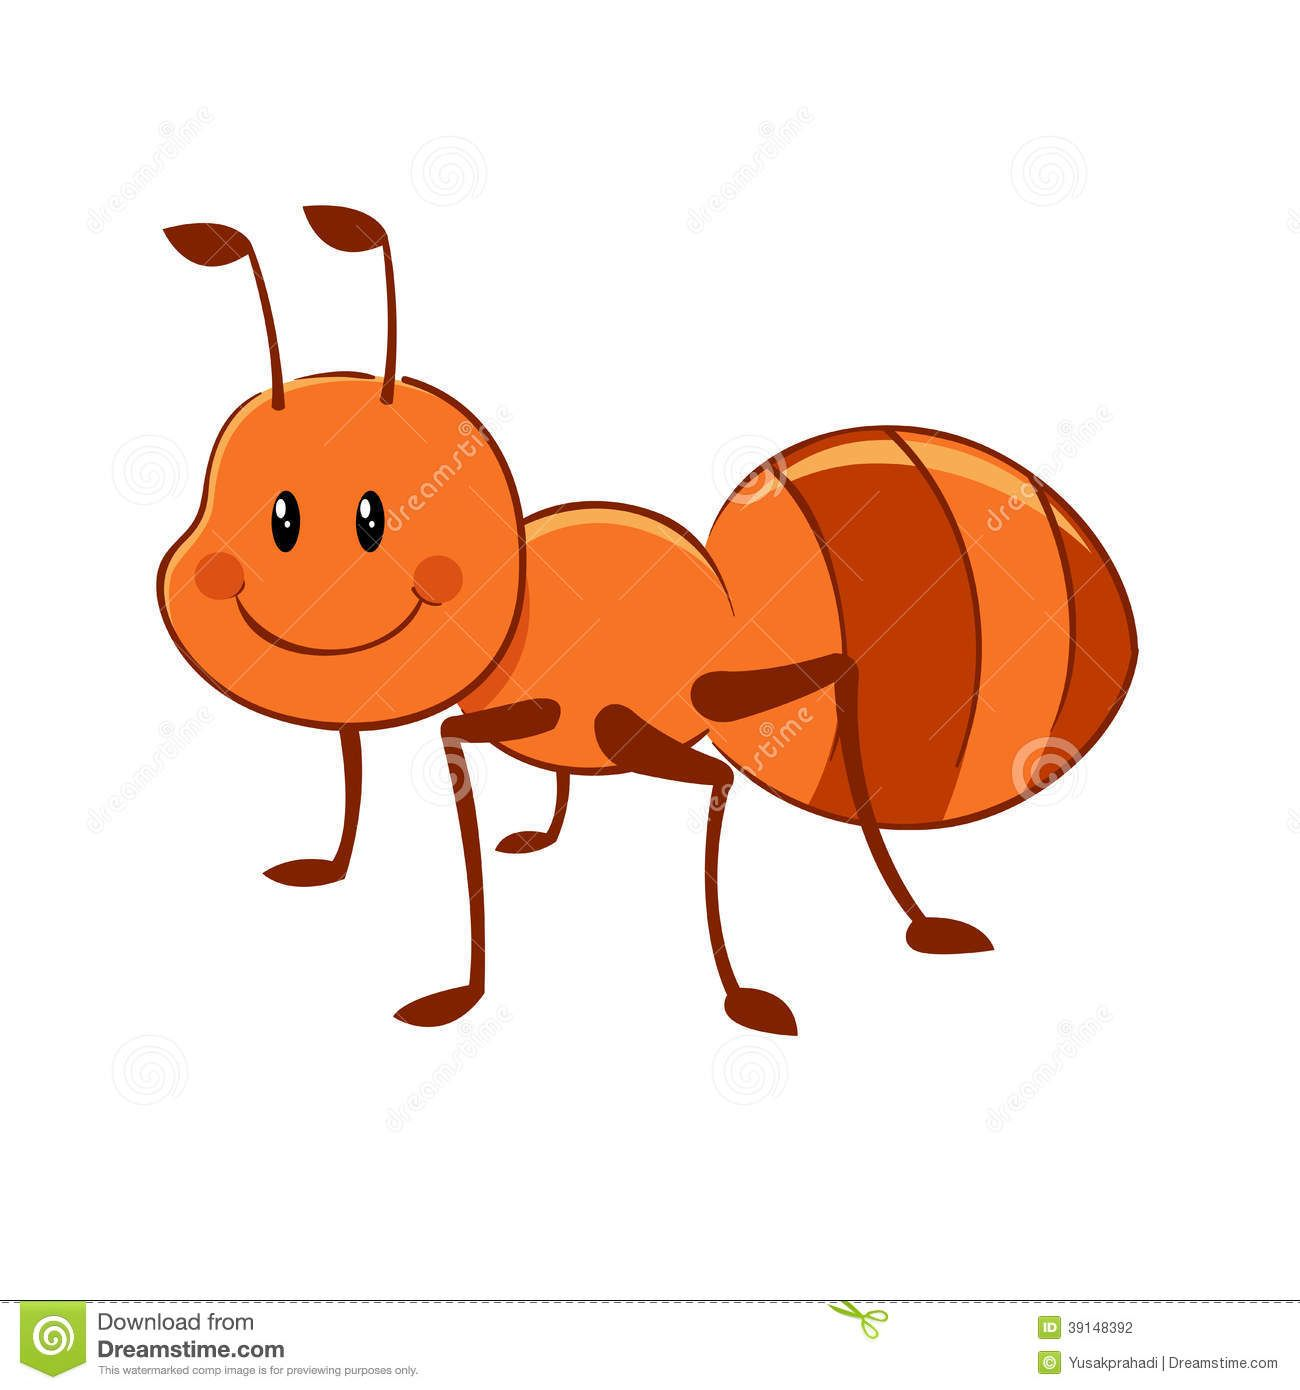 Cartoon ant mascot stock. Ants clipart children's